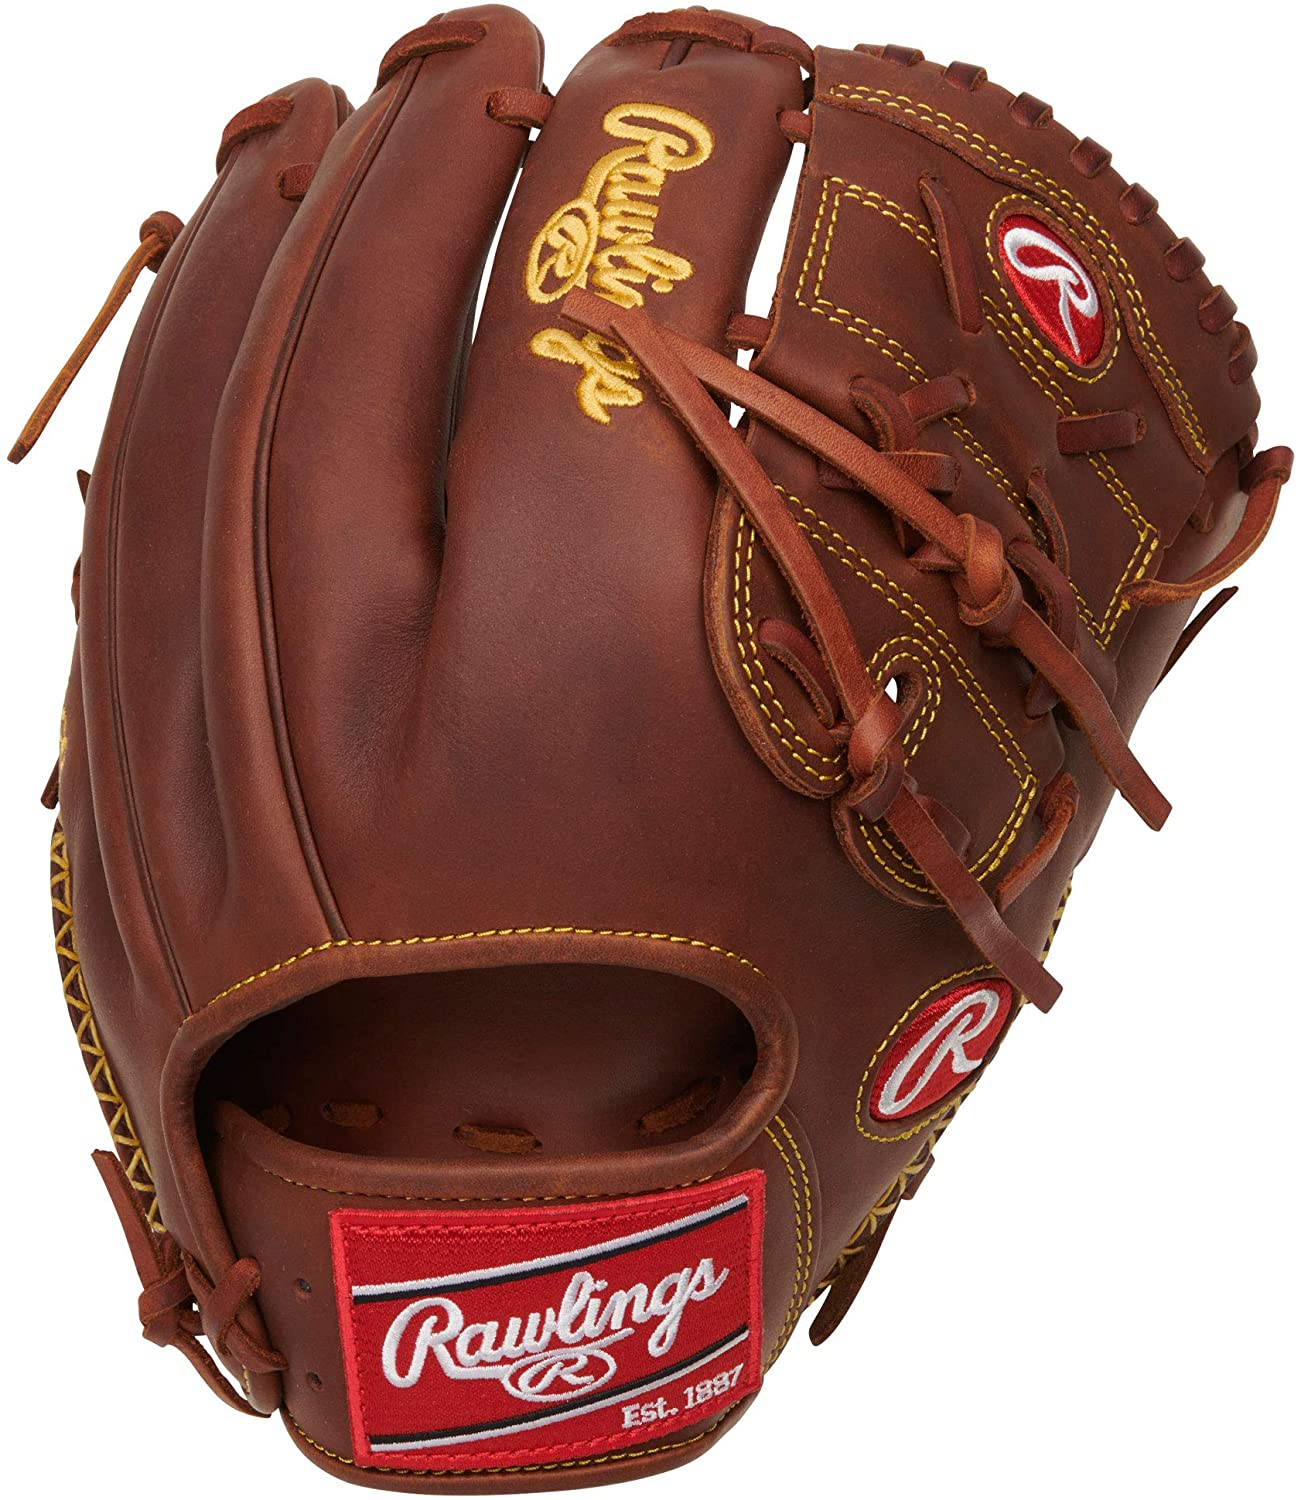 rawlings-heart-of-hide-11-75-baseball-glove-finger-shift-right-hand-throw PRO205-9TI-RightHandThrow Rawlings 083321702228 <span>Constructed from Rawlings world-renowned Heart of the Hide steer leather Heart